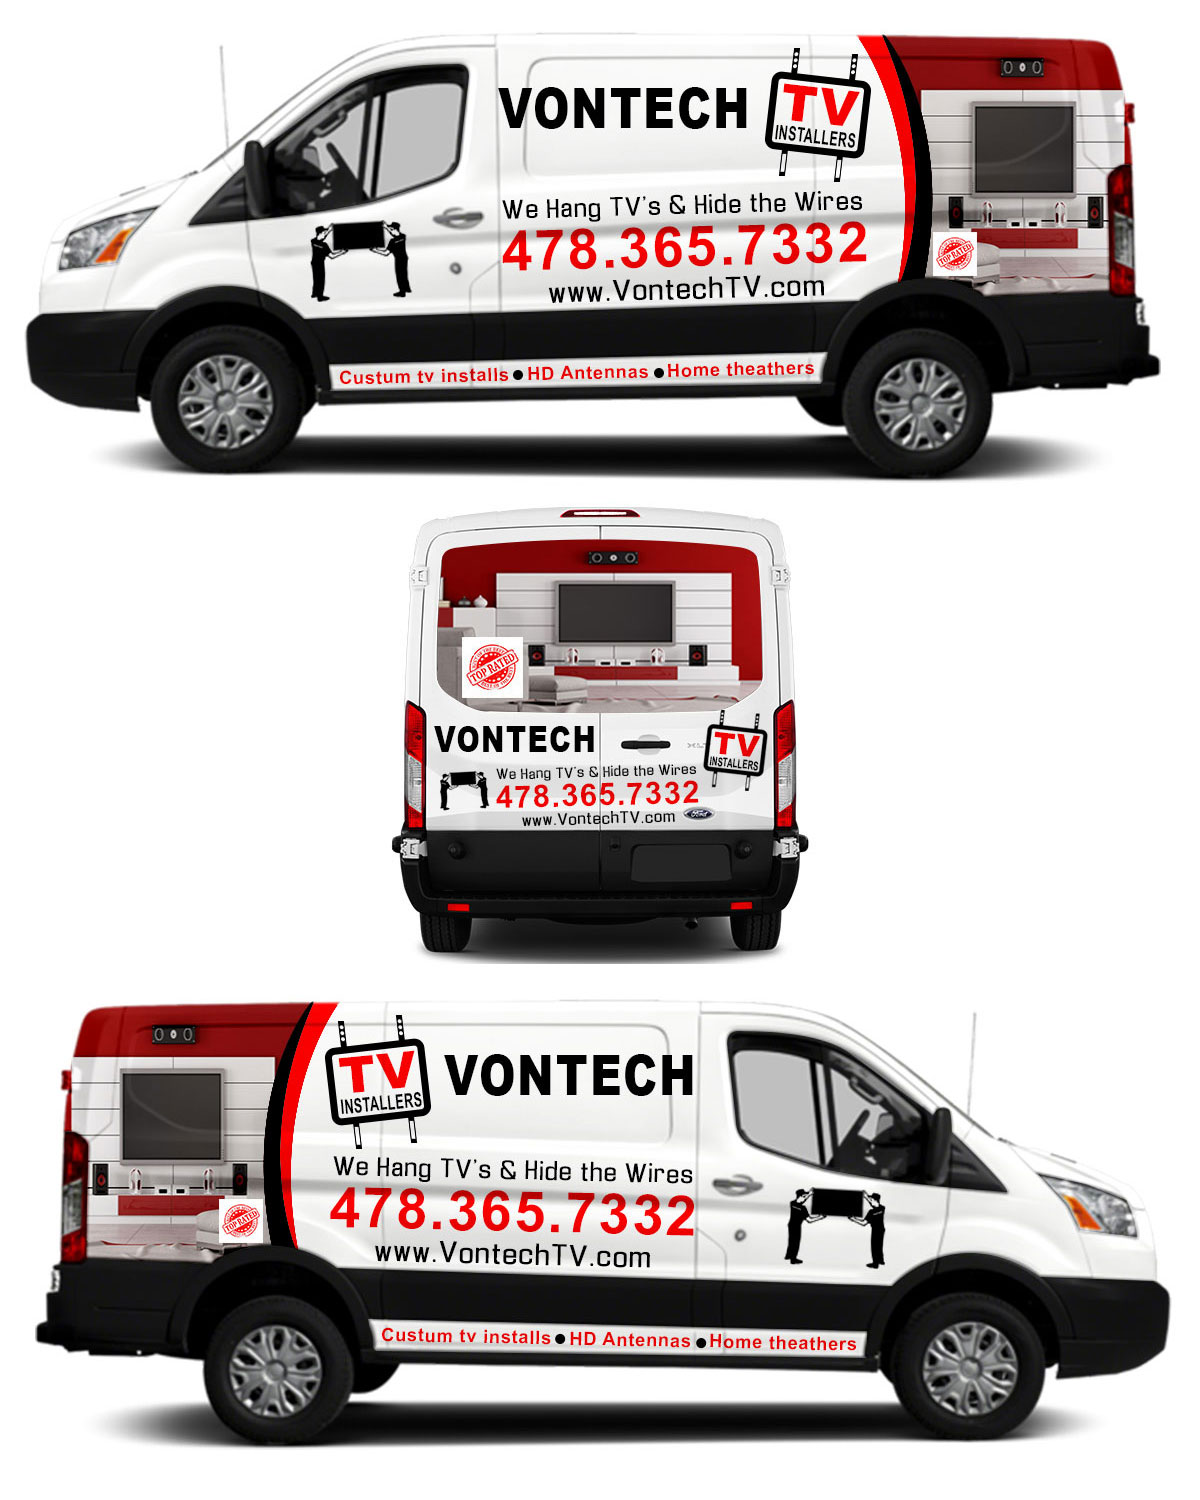 Modern, Professional Car Wrap Design for Vontech TV